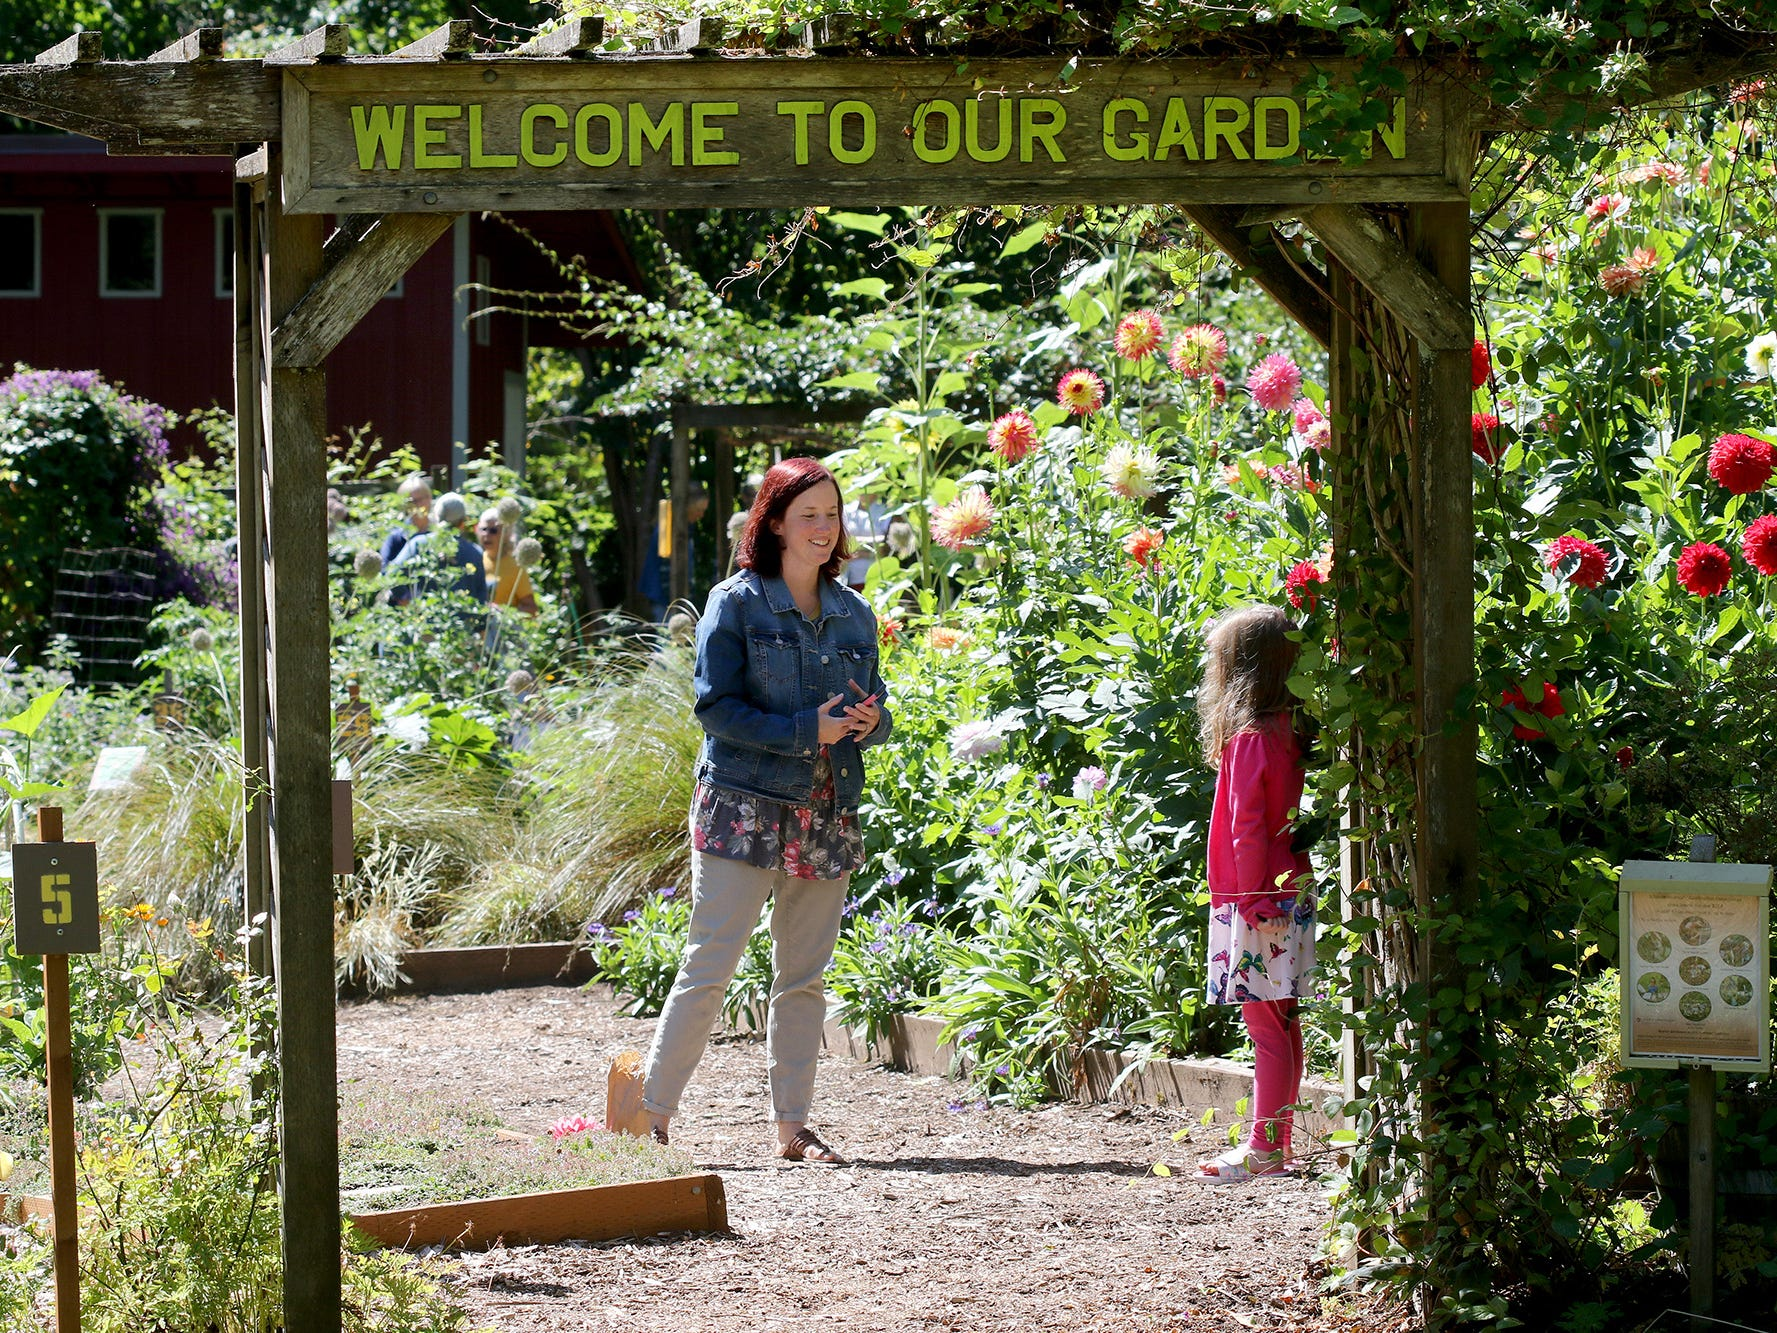 Esther Deal, of Bremerton, and her daughter Kara, 5, at the entrance to the Anna Smith Garden on Saturday, August 4, 2018.